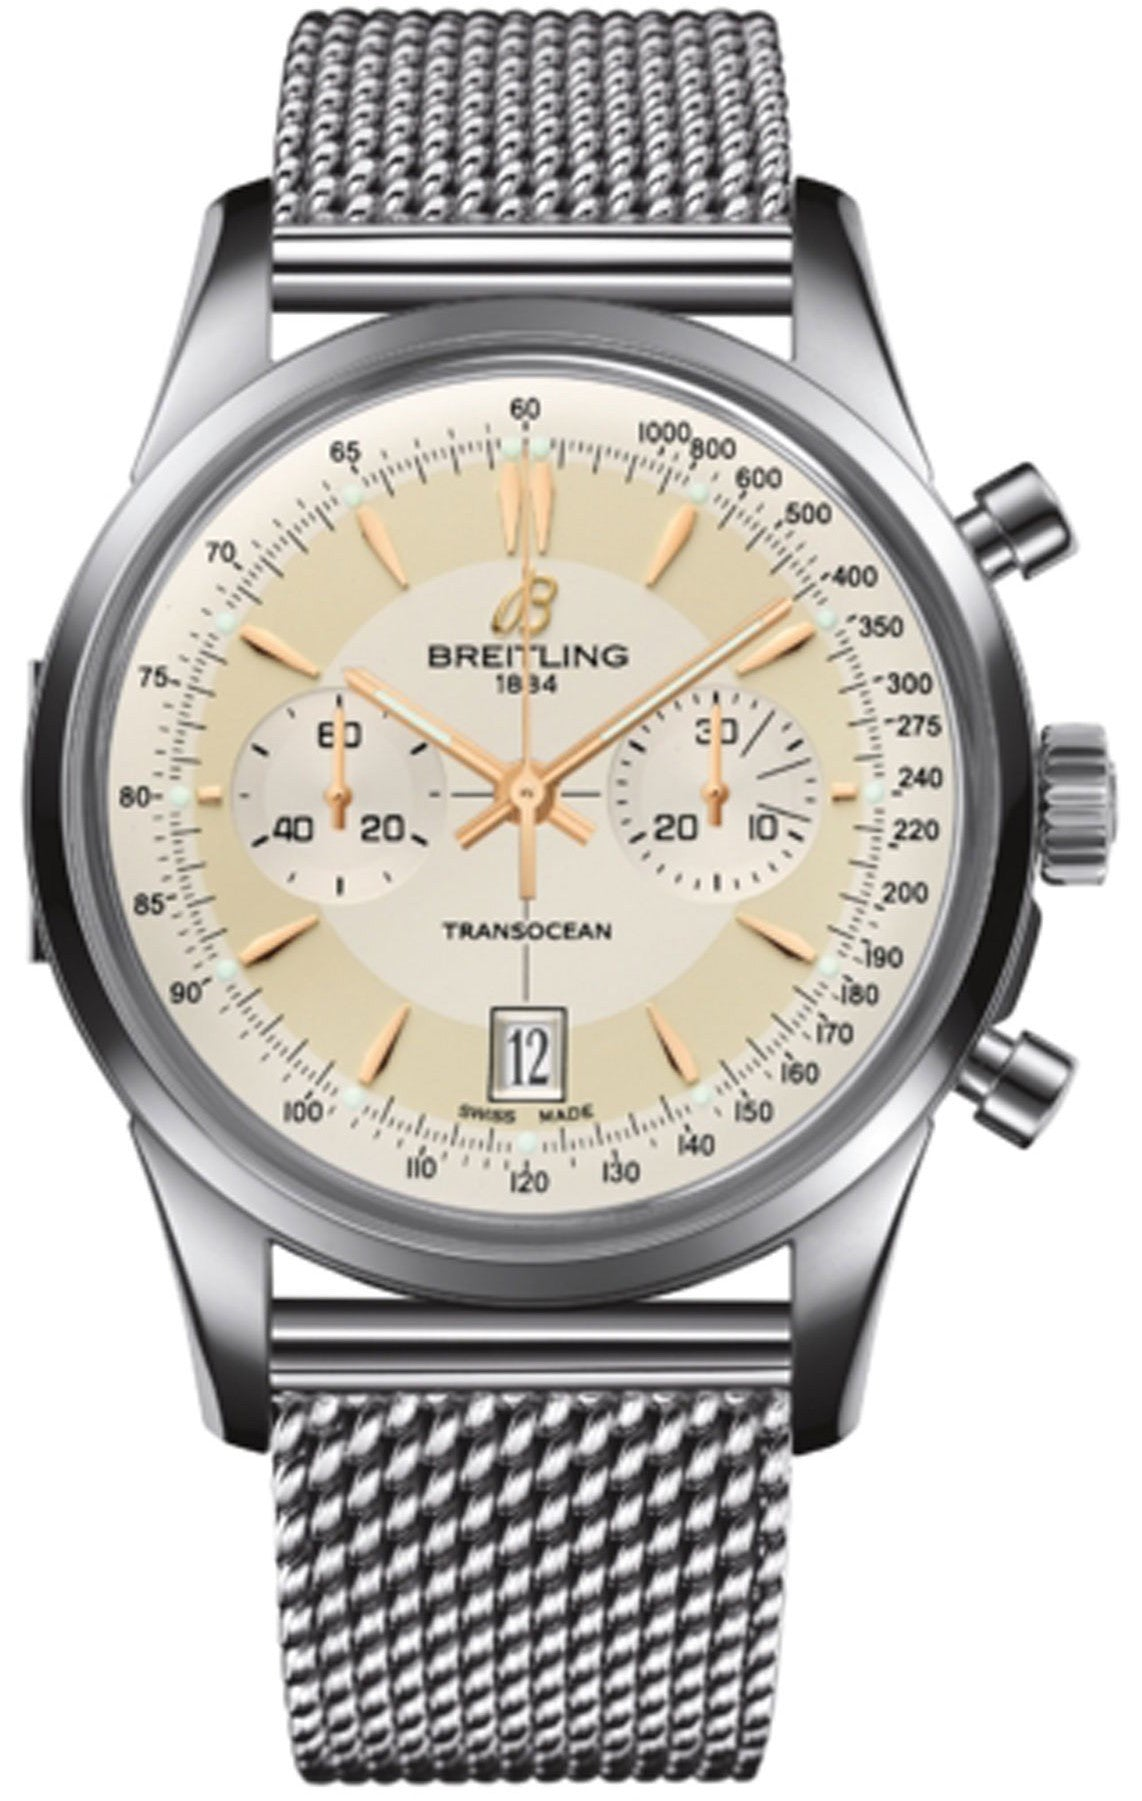 Breitling Watch Transocean Chronograph Limited Edition